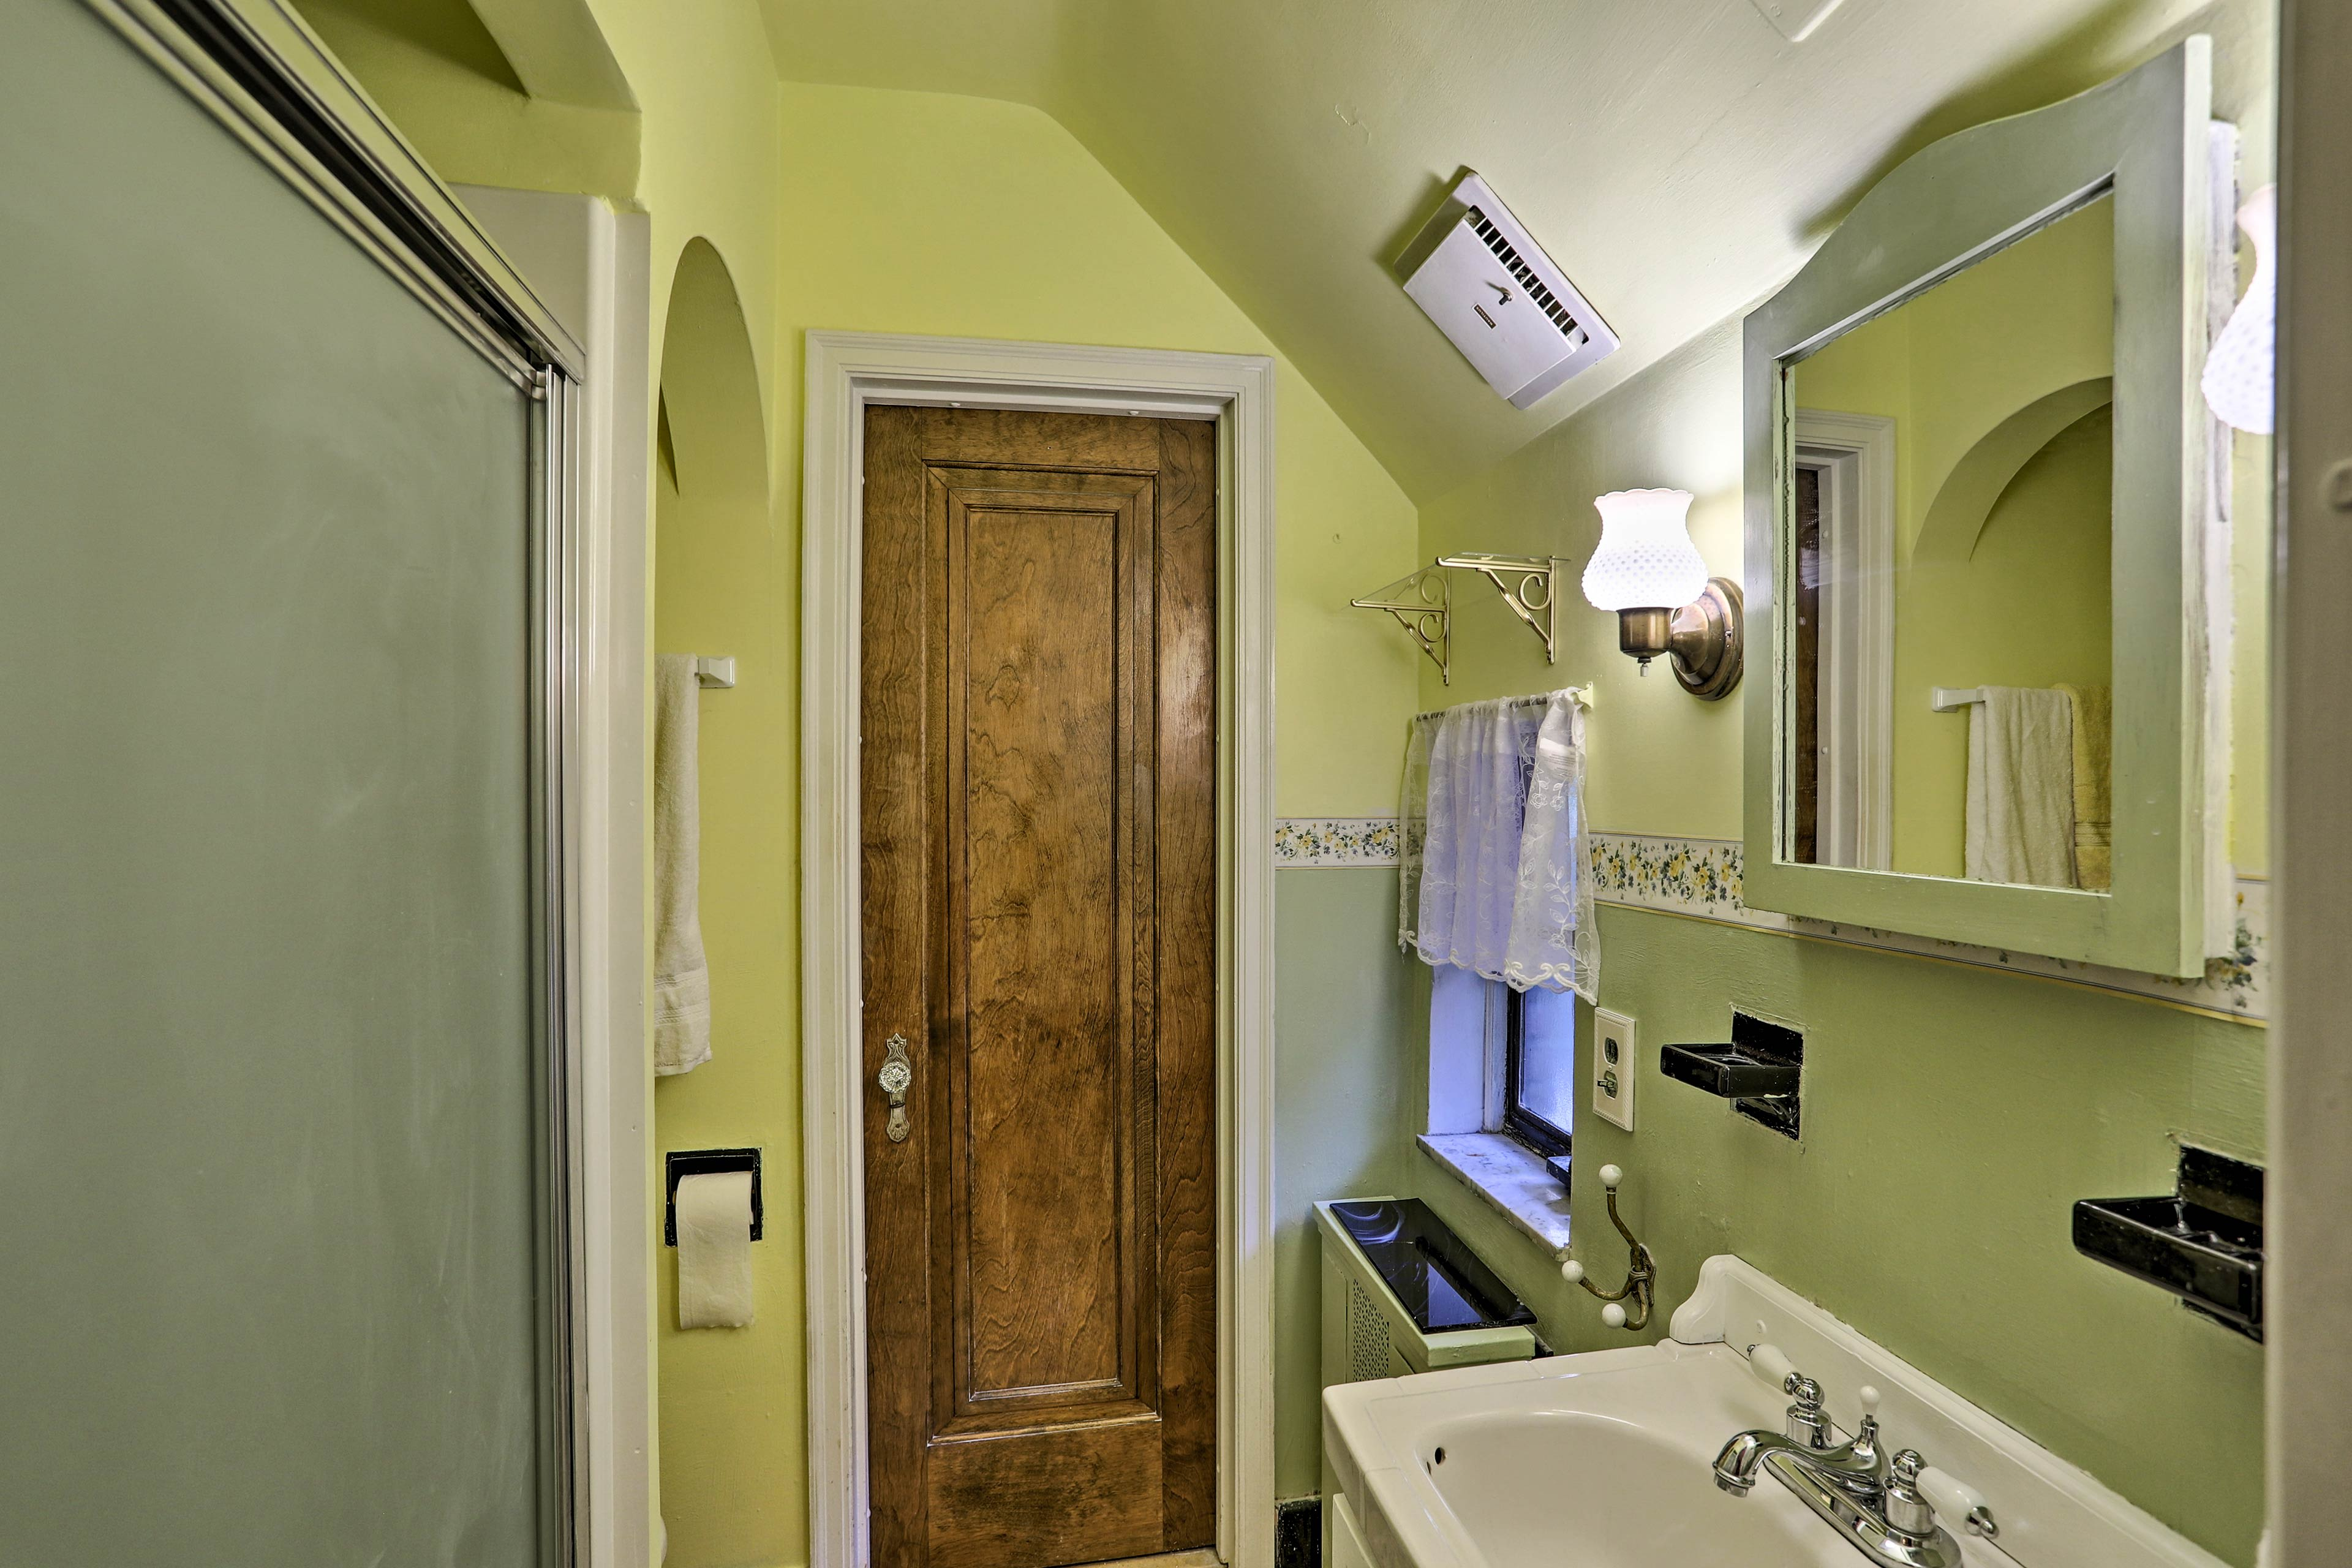 The master en-suite bathroom is equipped with fresh towels & toiletries.